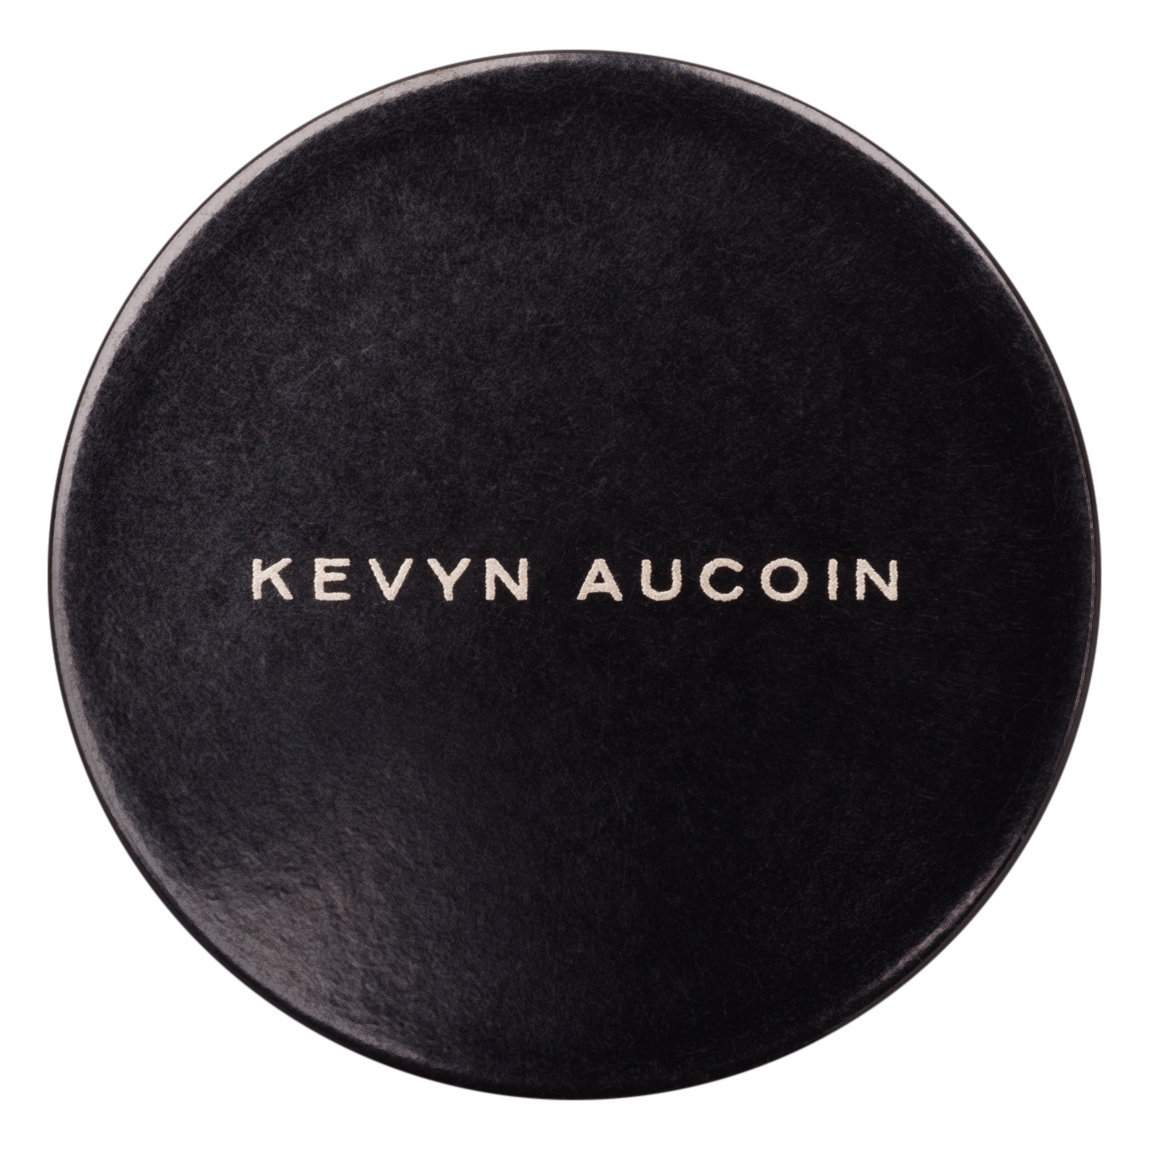 Kevyn Aucoin The Exotique Diamond Eye Gloss Cosmic